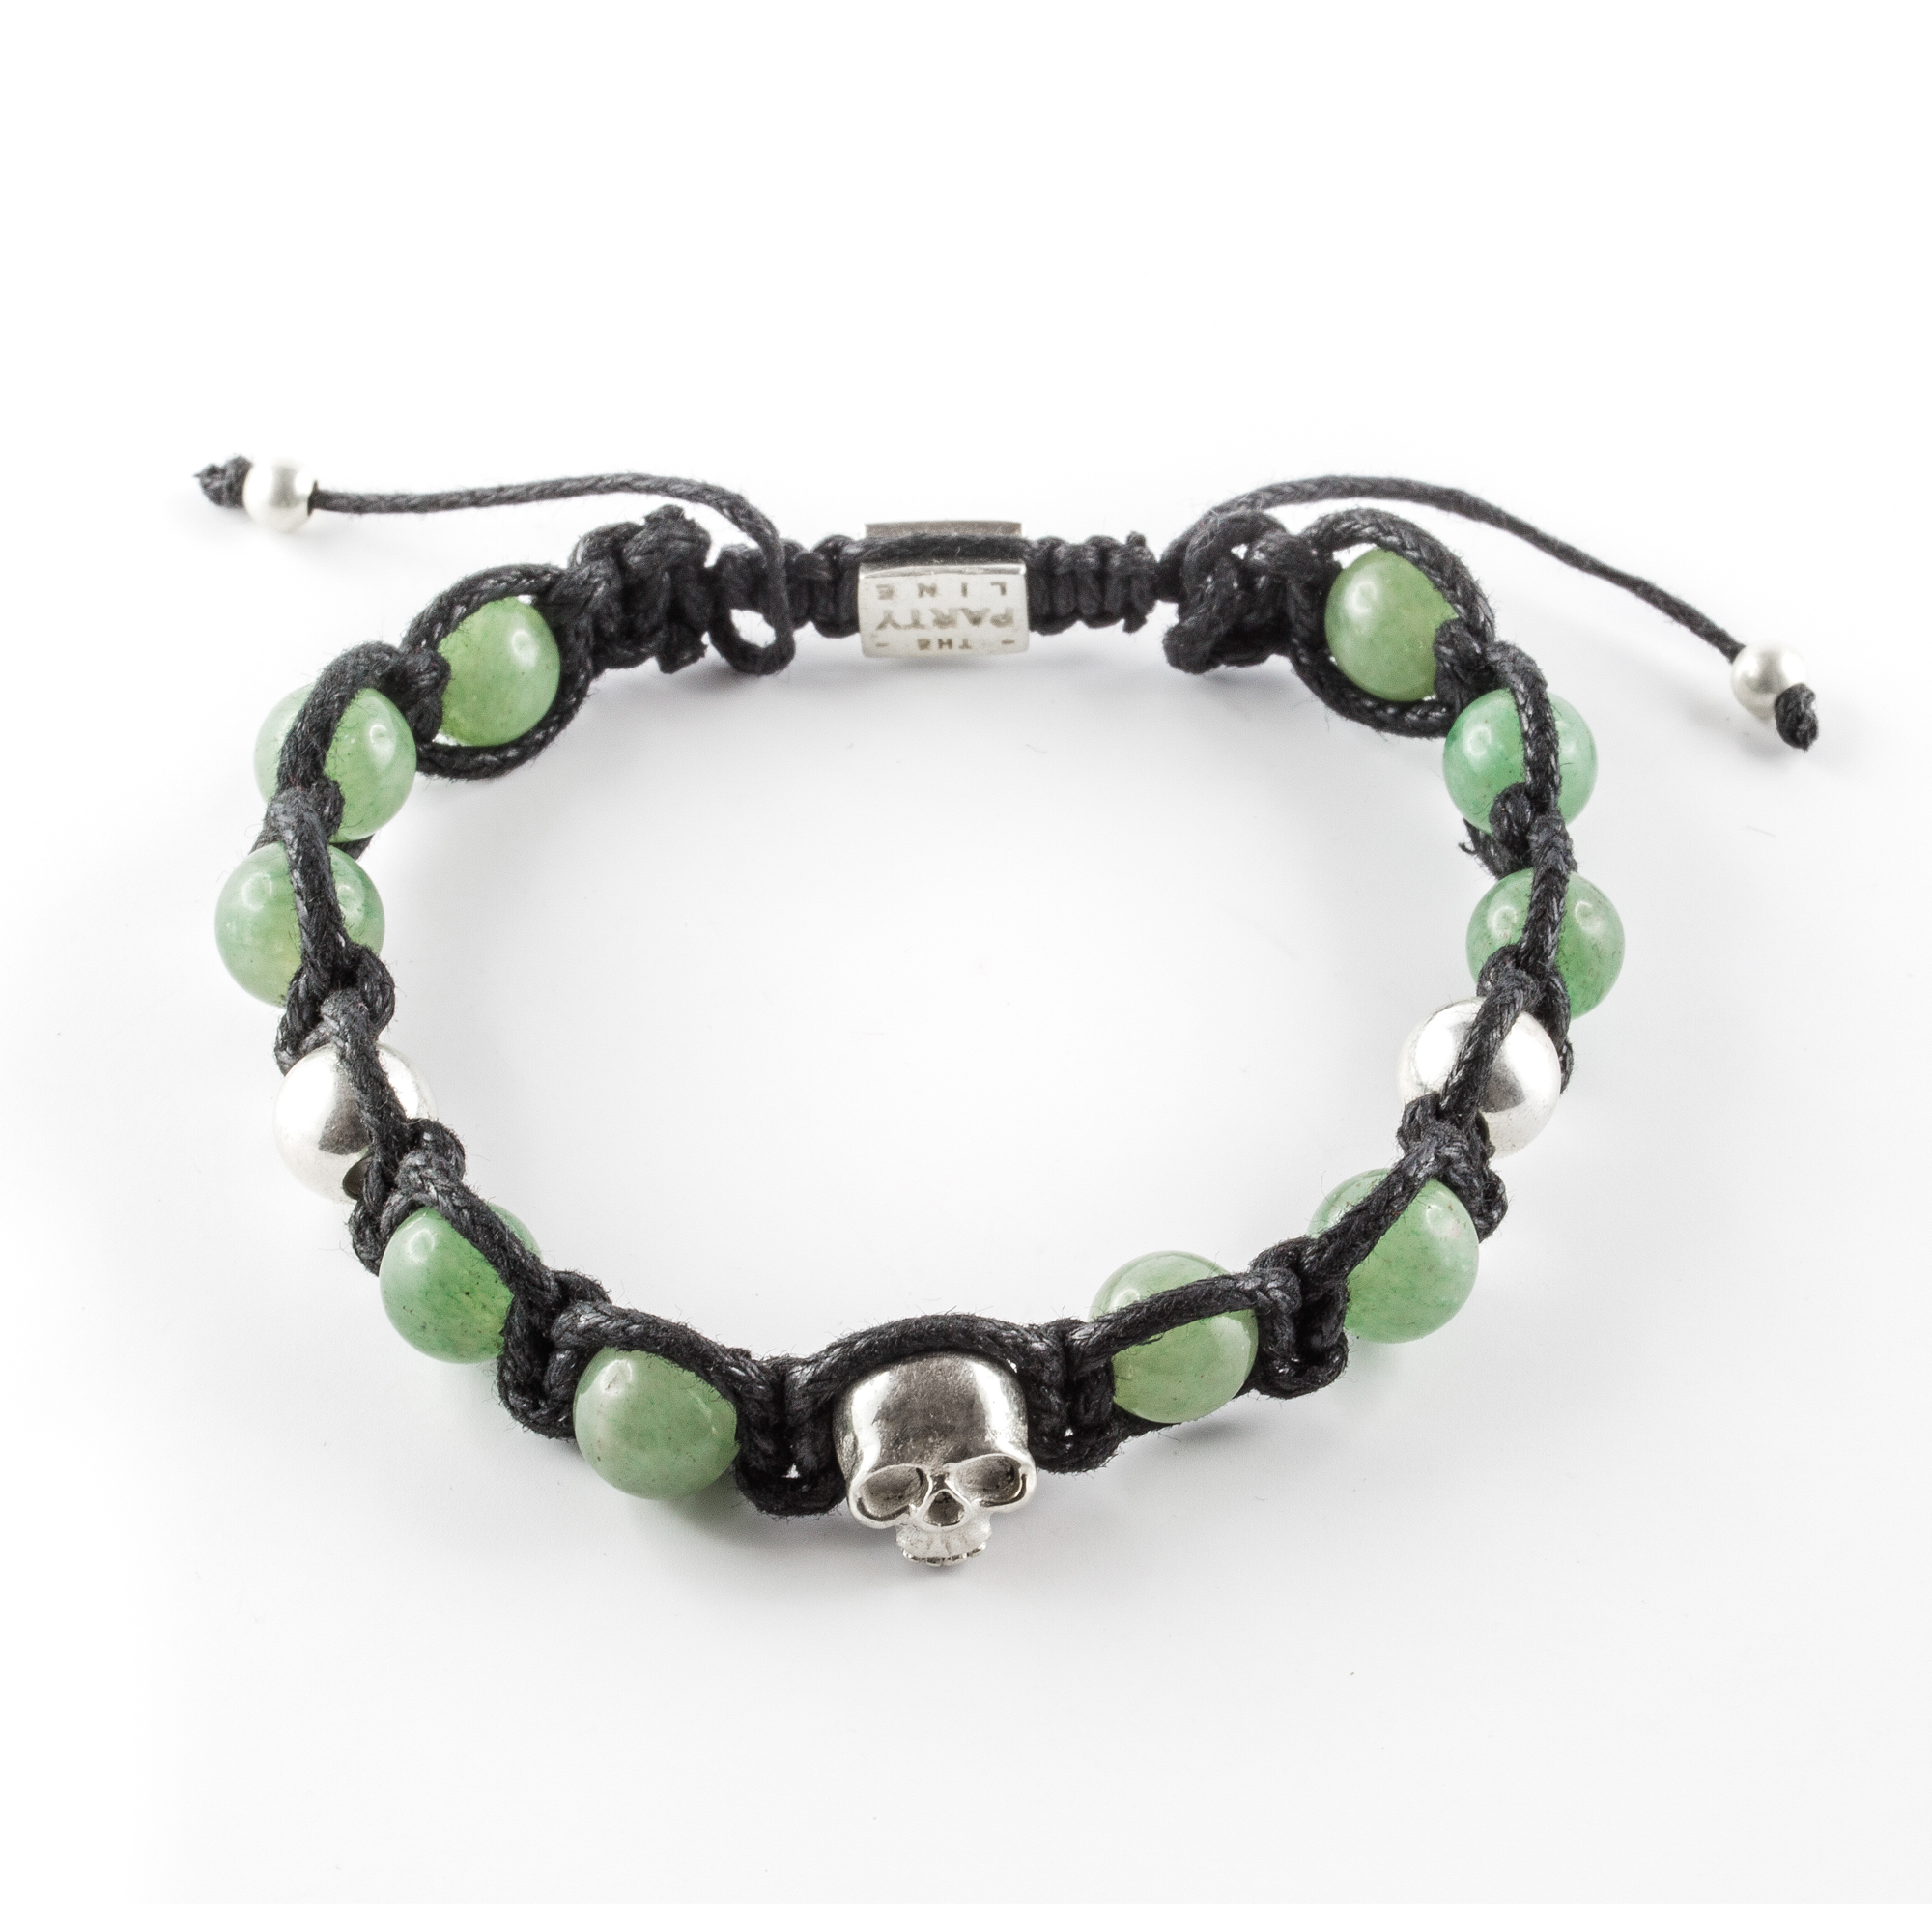 Macrame Bracelet with aventurine and silver